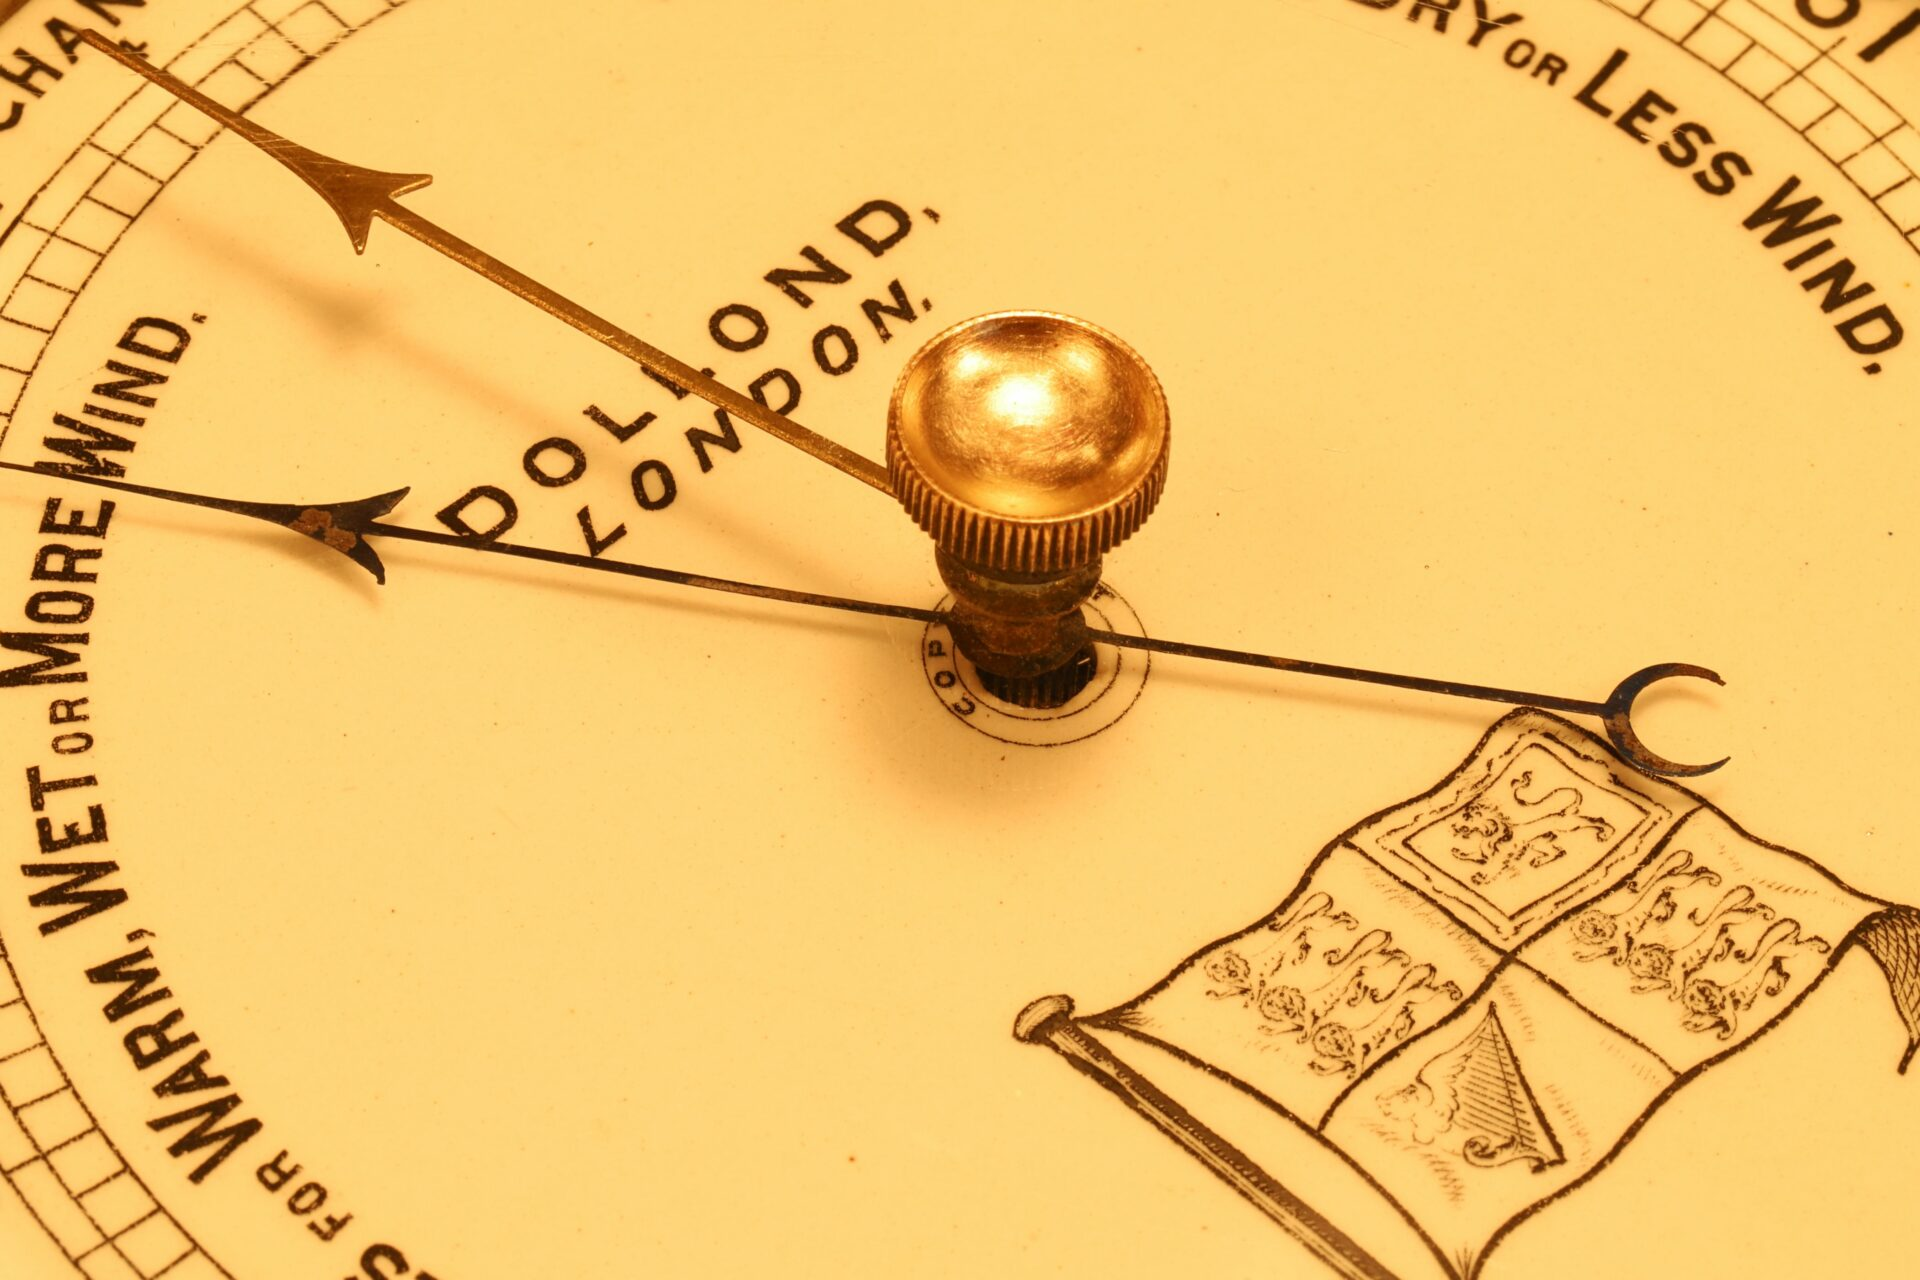 Close up of dial of Dollond Royal Standard Marine Barometer c1880 taken from lefthand side